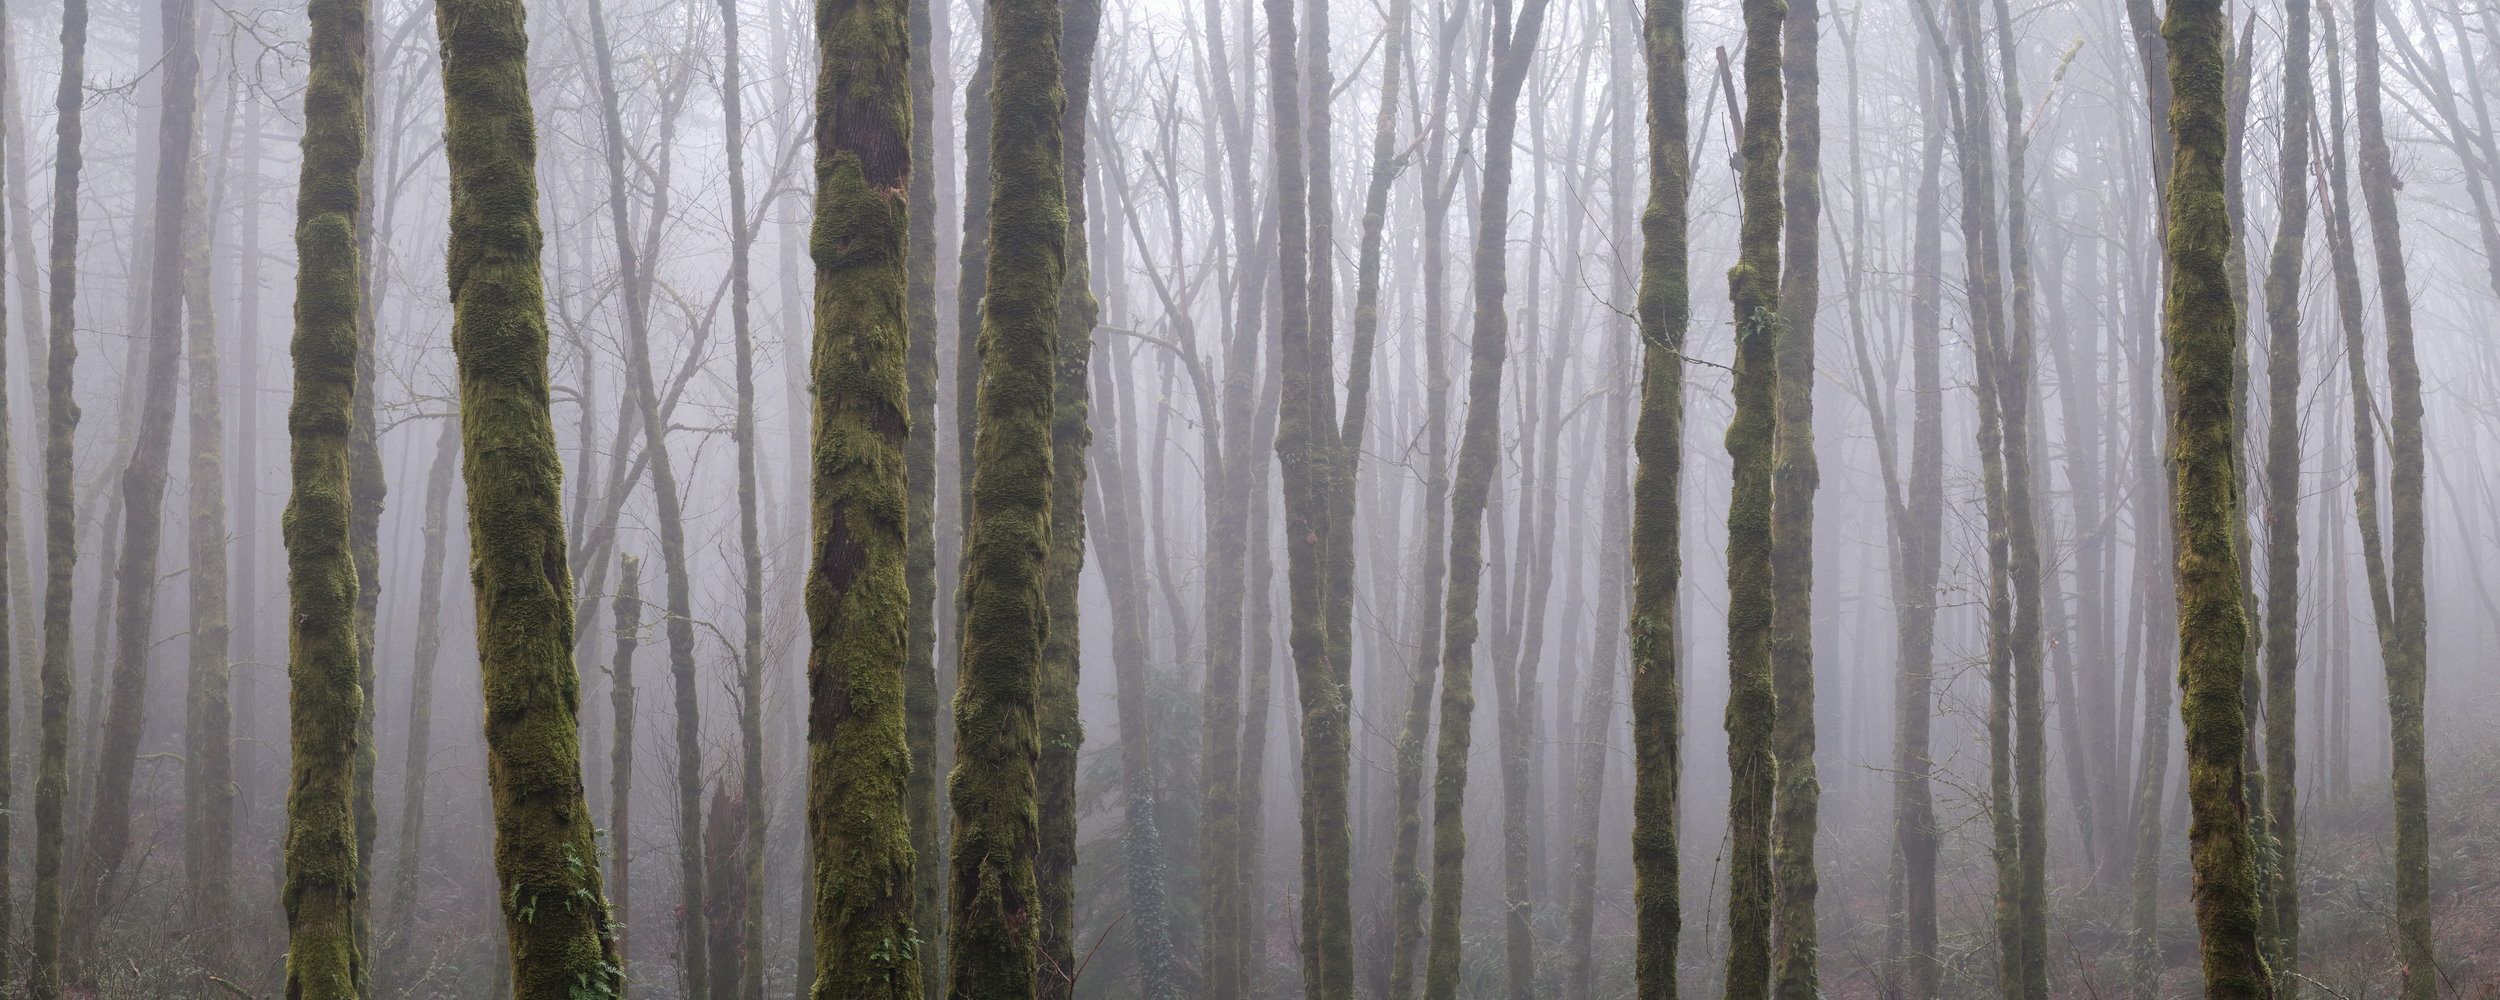 The fog rolled in and during a dense fog advisory I shot this image I had been waiting for